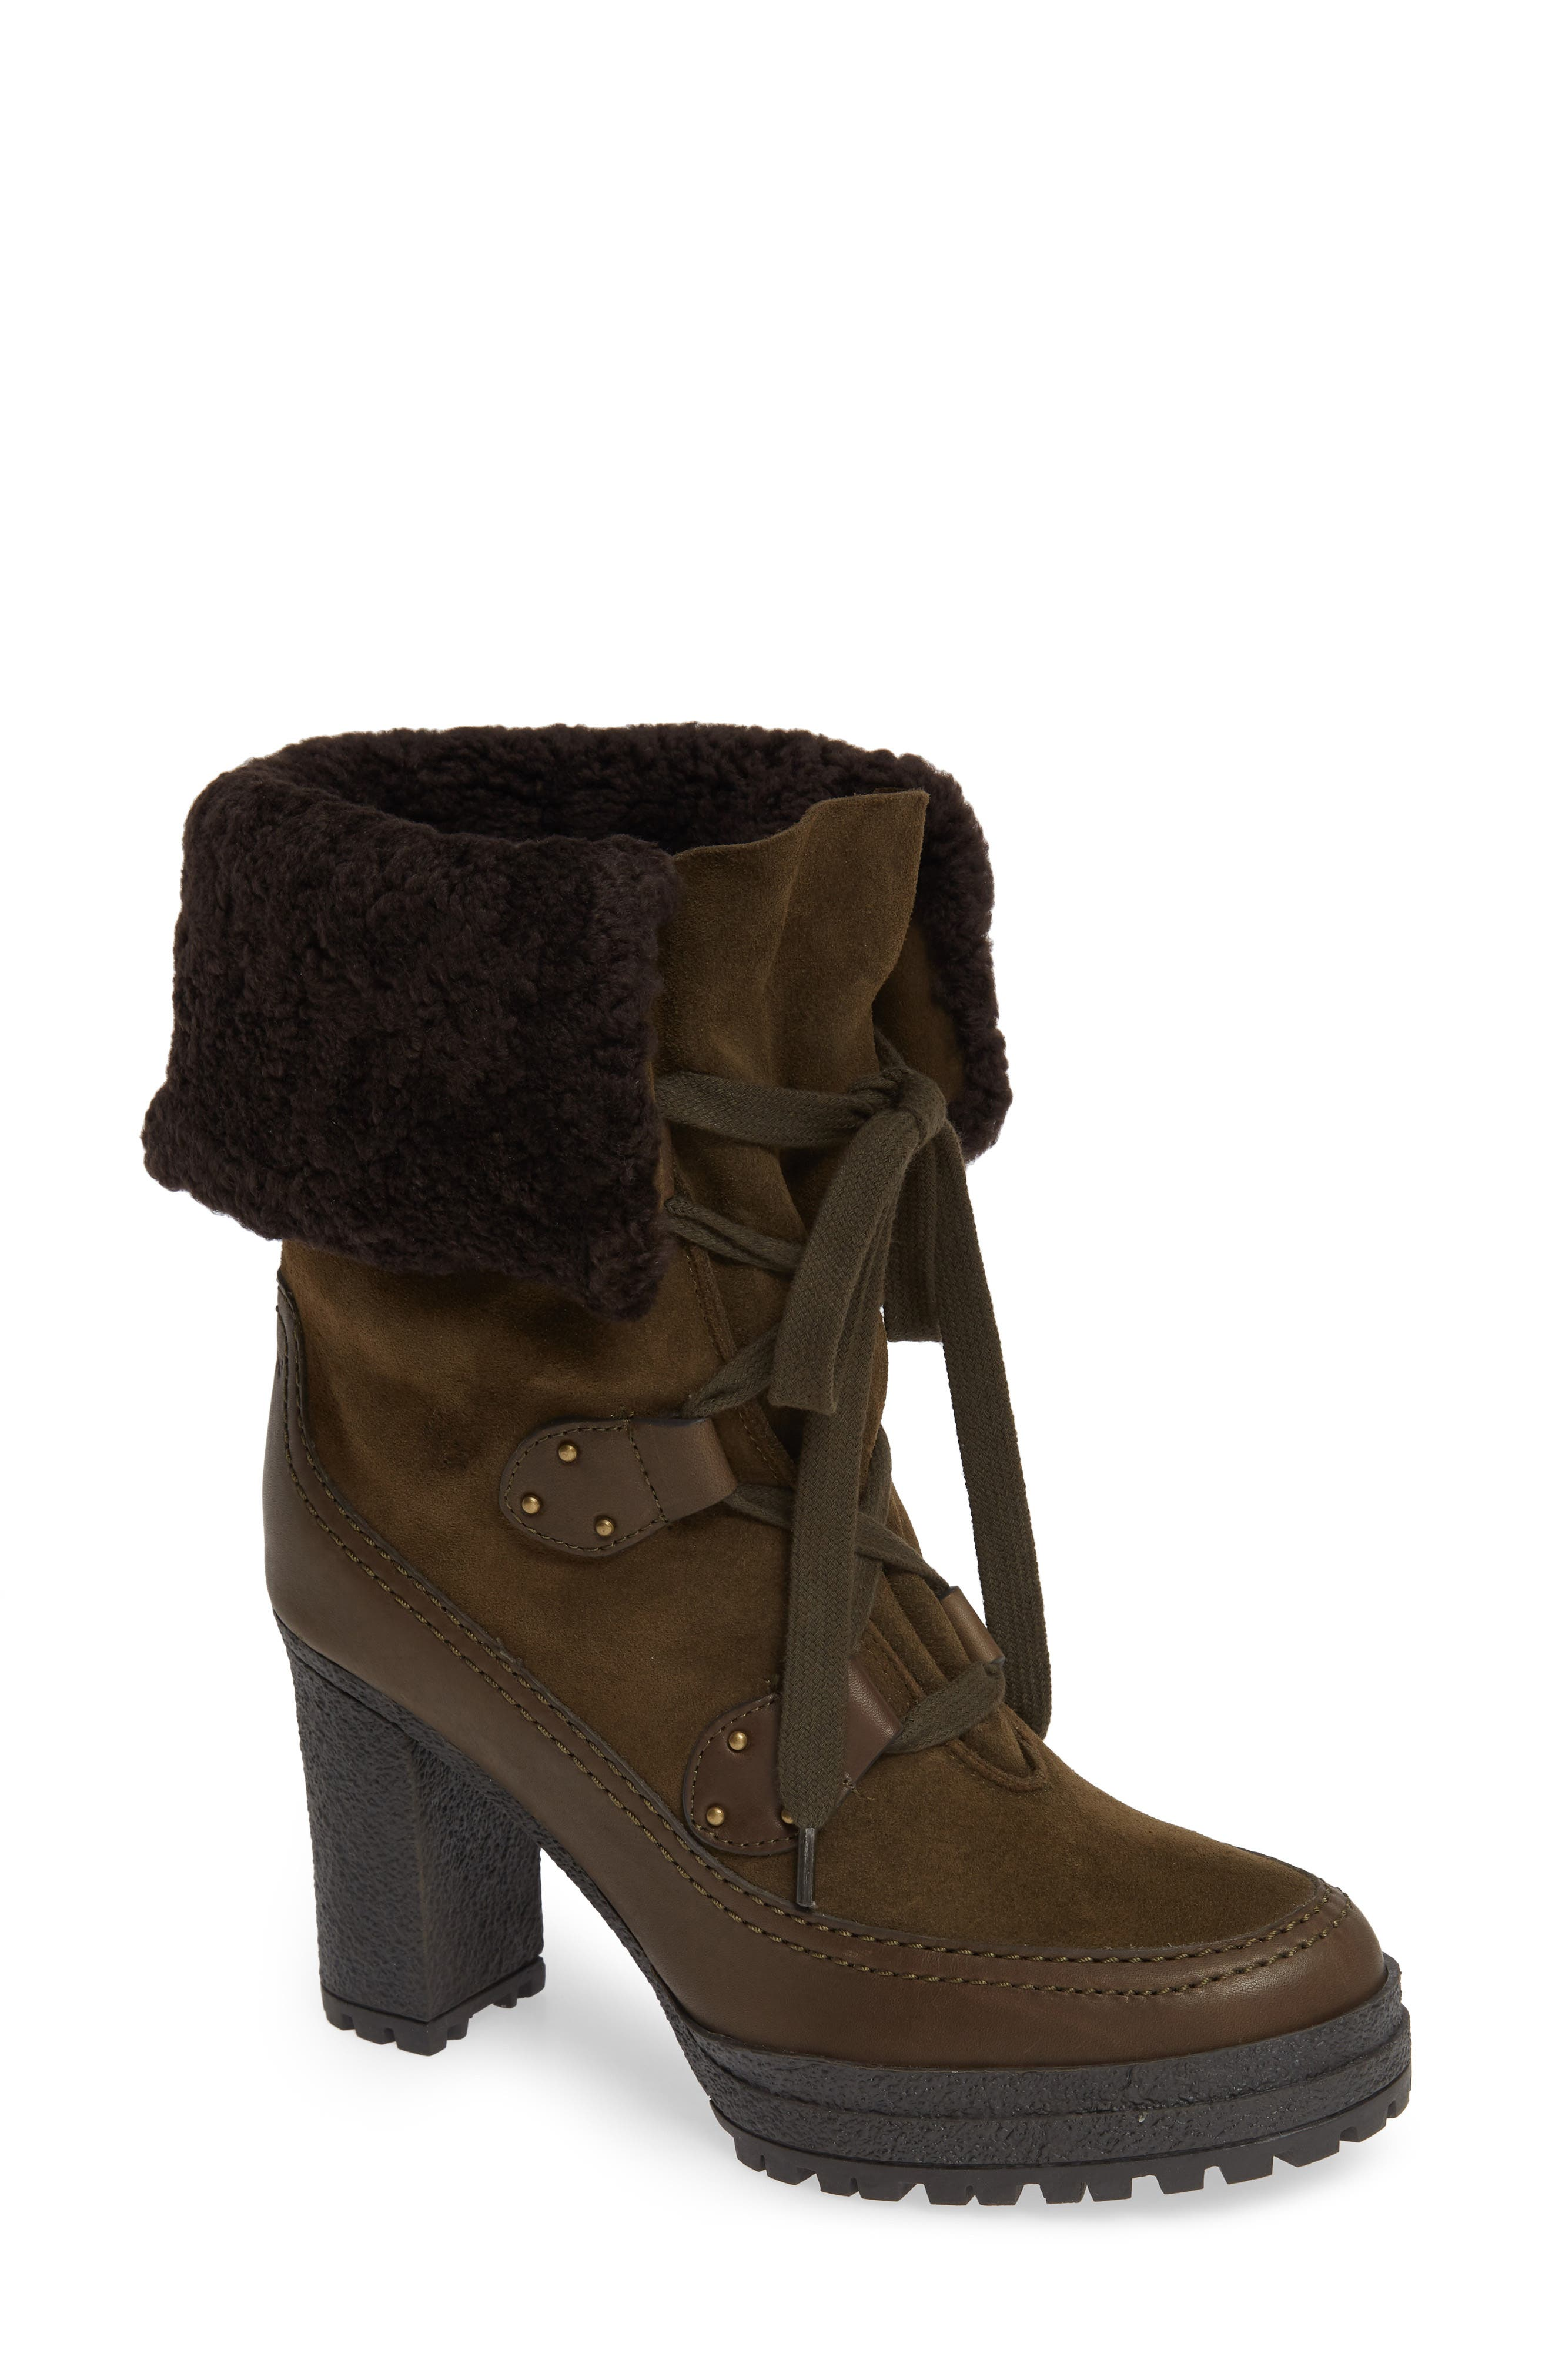 SEE BY CHLOÉ Verena Shearling Cuff Bootie, Main, color, 300